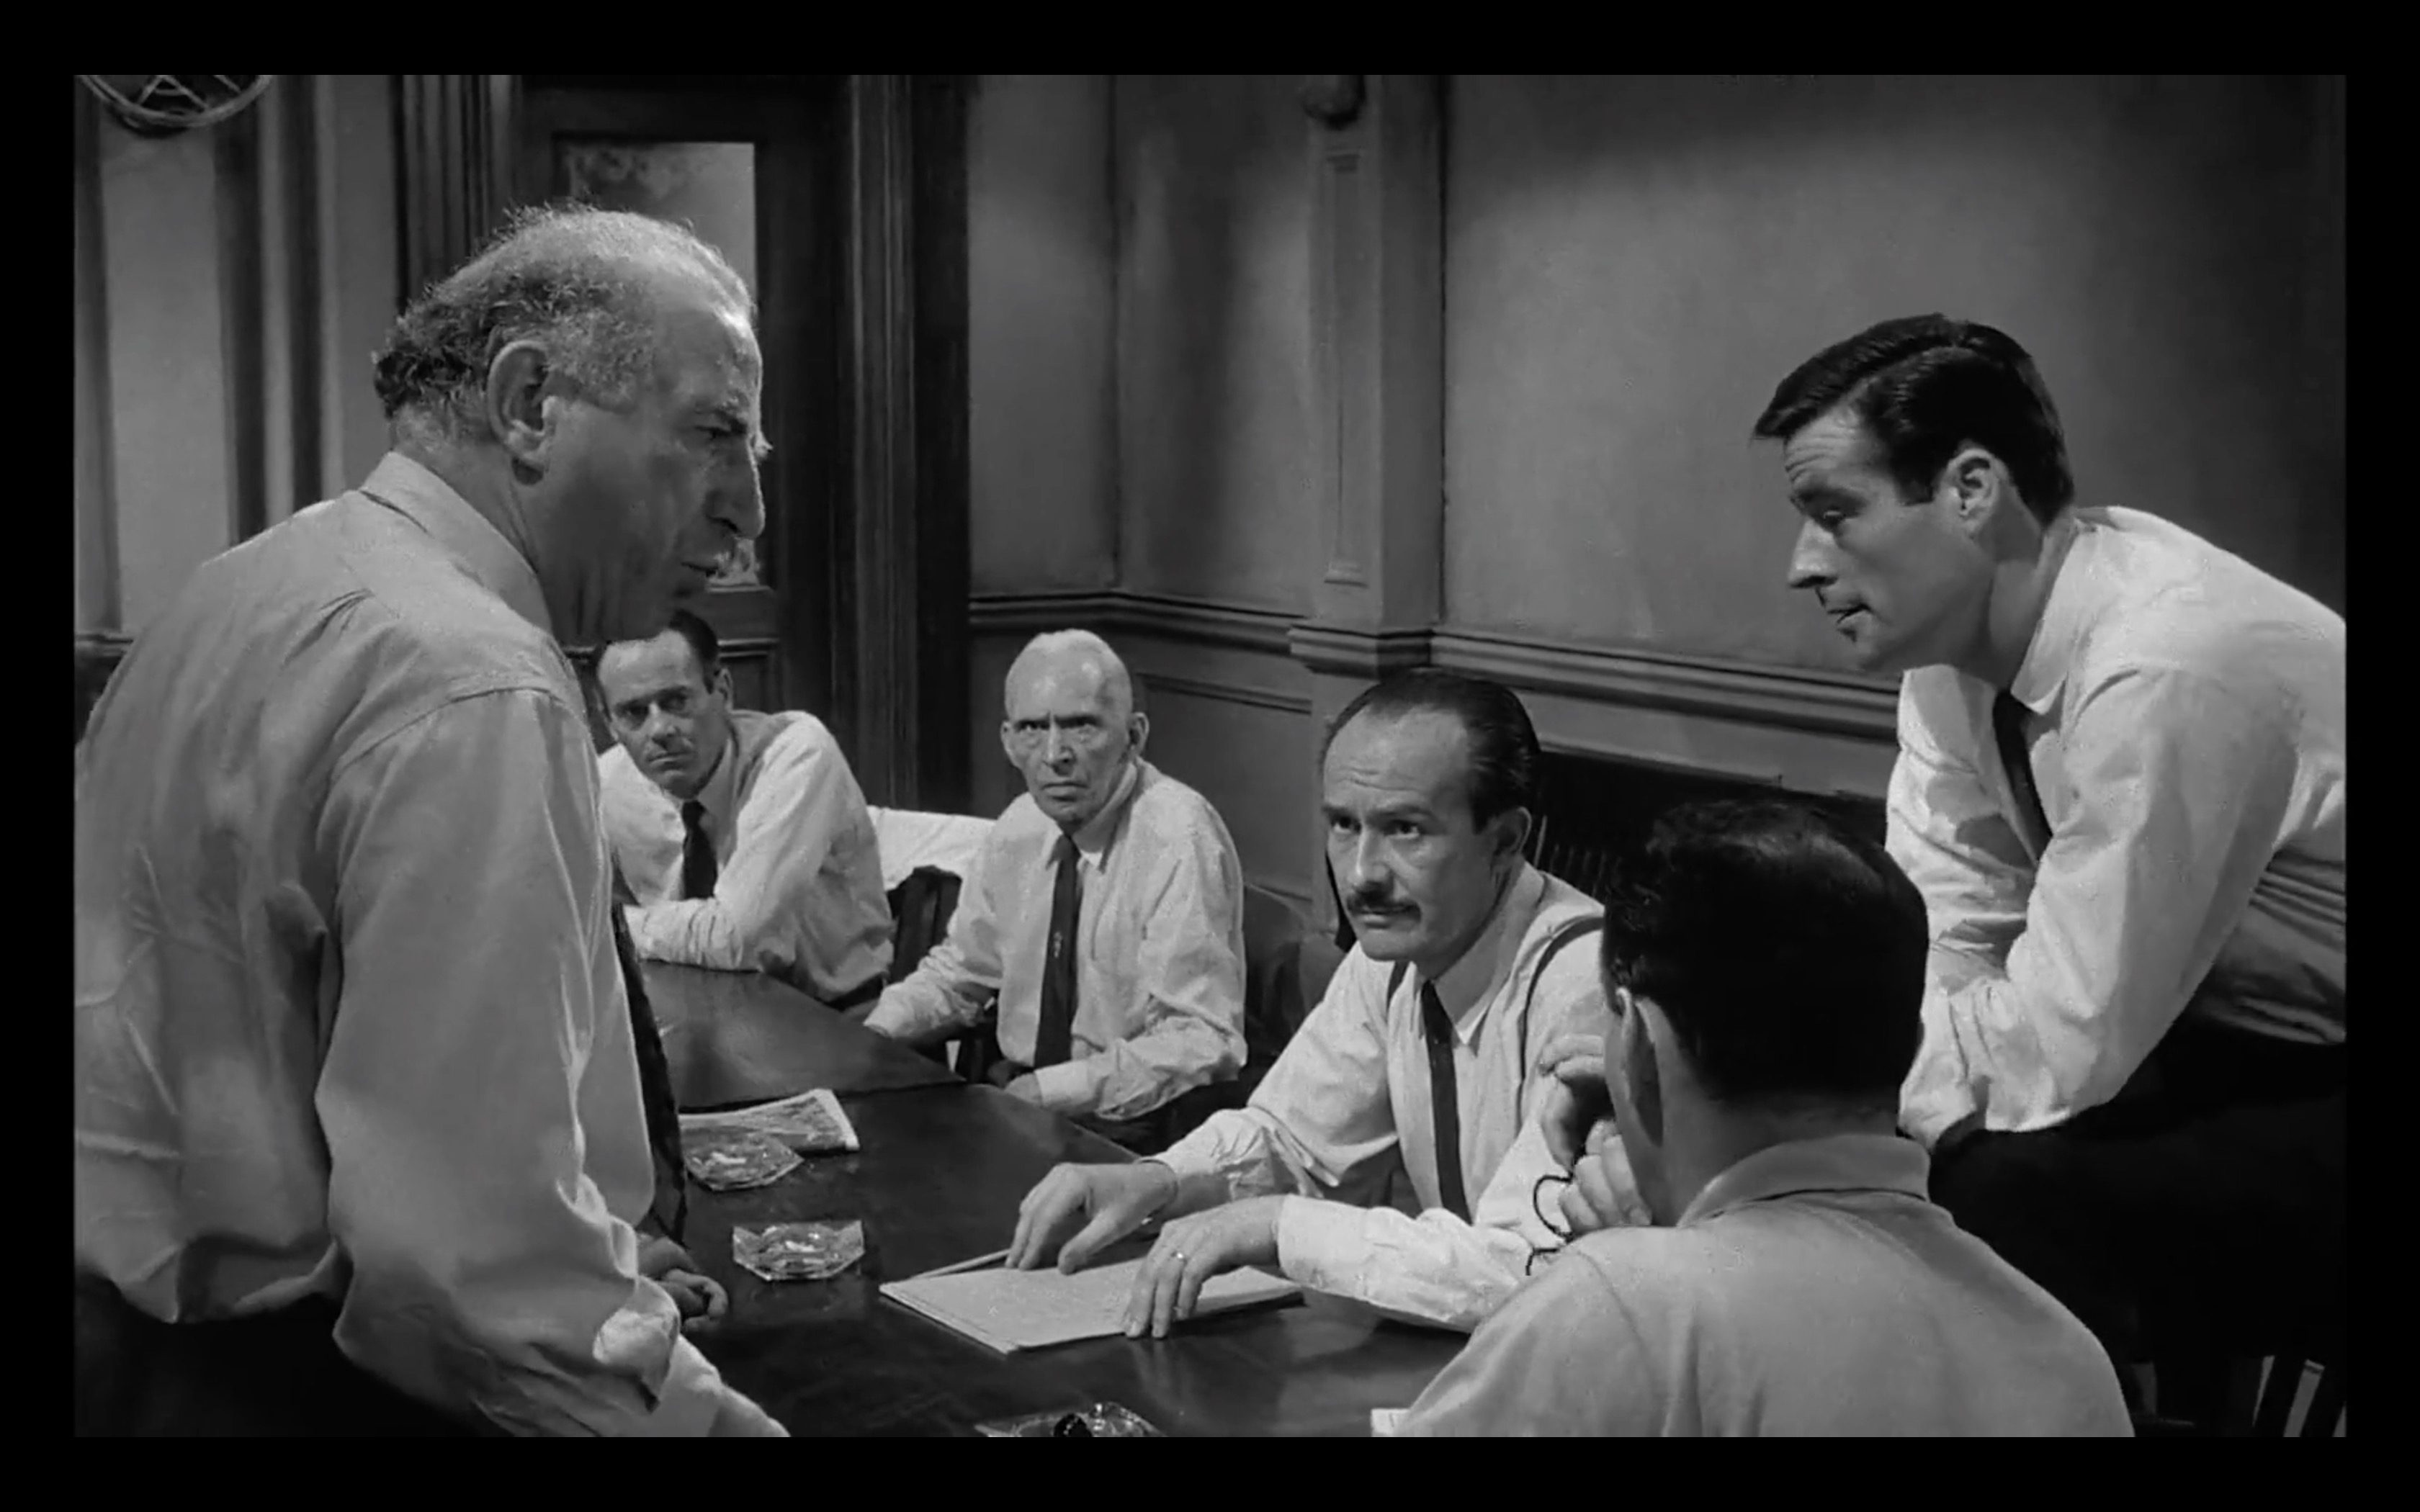 twelve angry men background research Twelve angry men quickly became a classic story for stage and screen and rose's cast of characters some of the most memorable in modern history yet, not one of the twelve jurors has a name, they are simply known by their juror numbers.